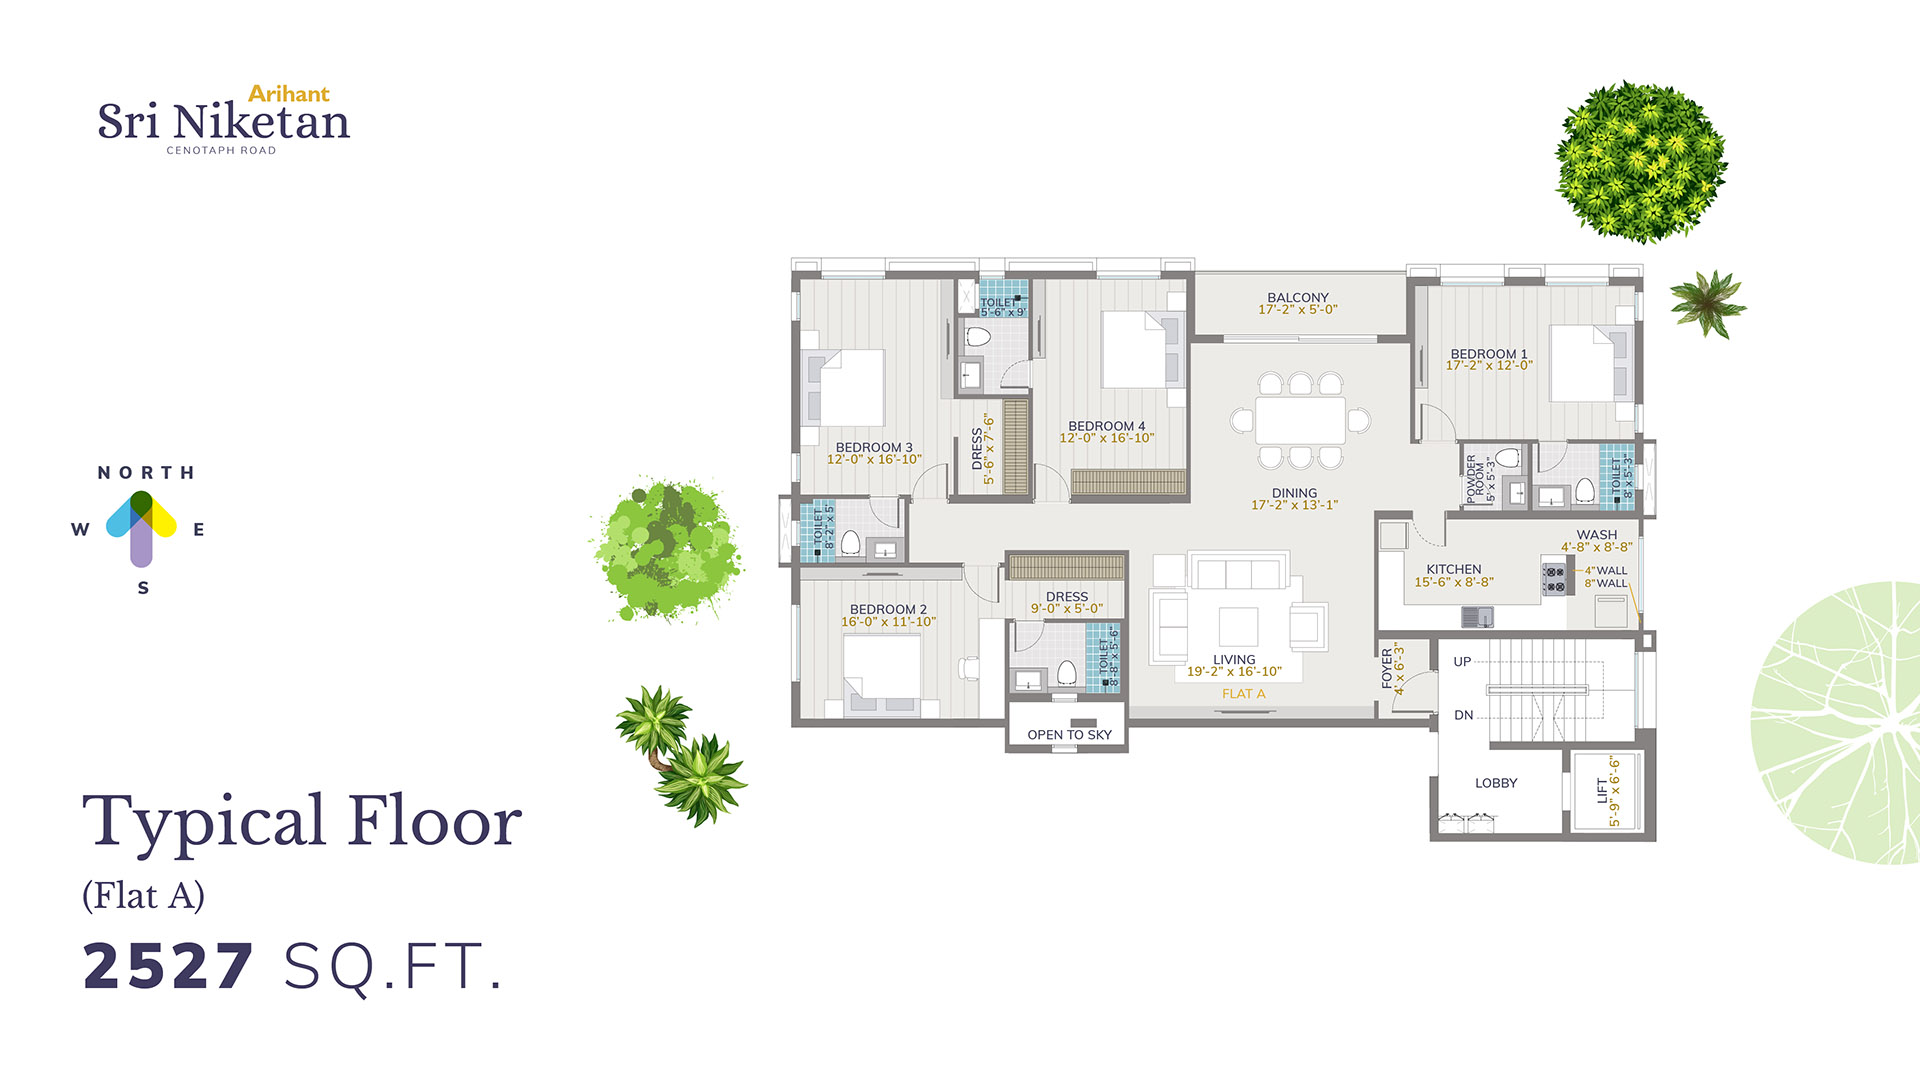 Typical Floor - Flat A